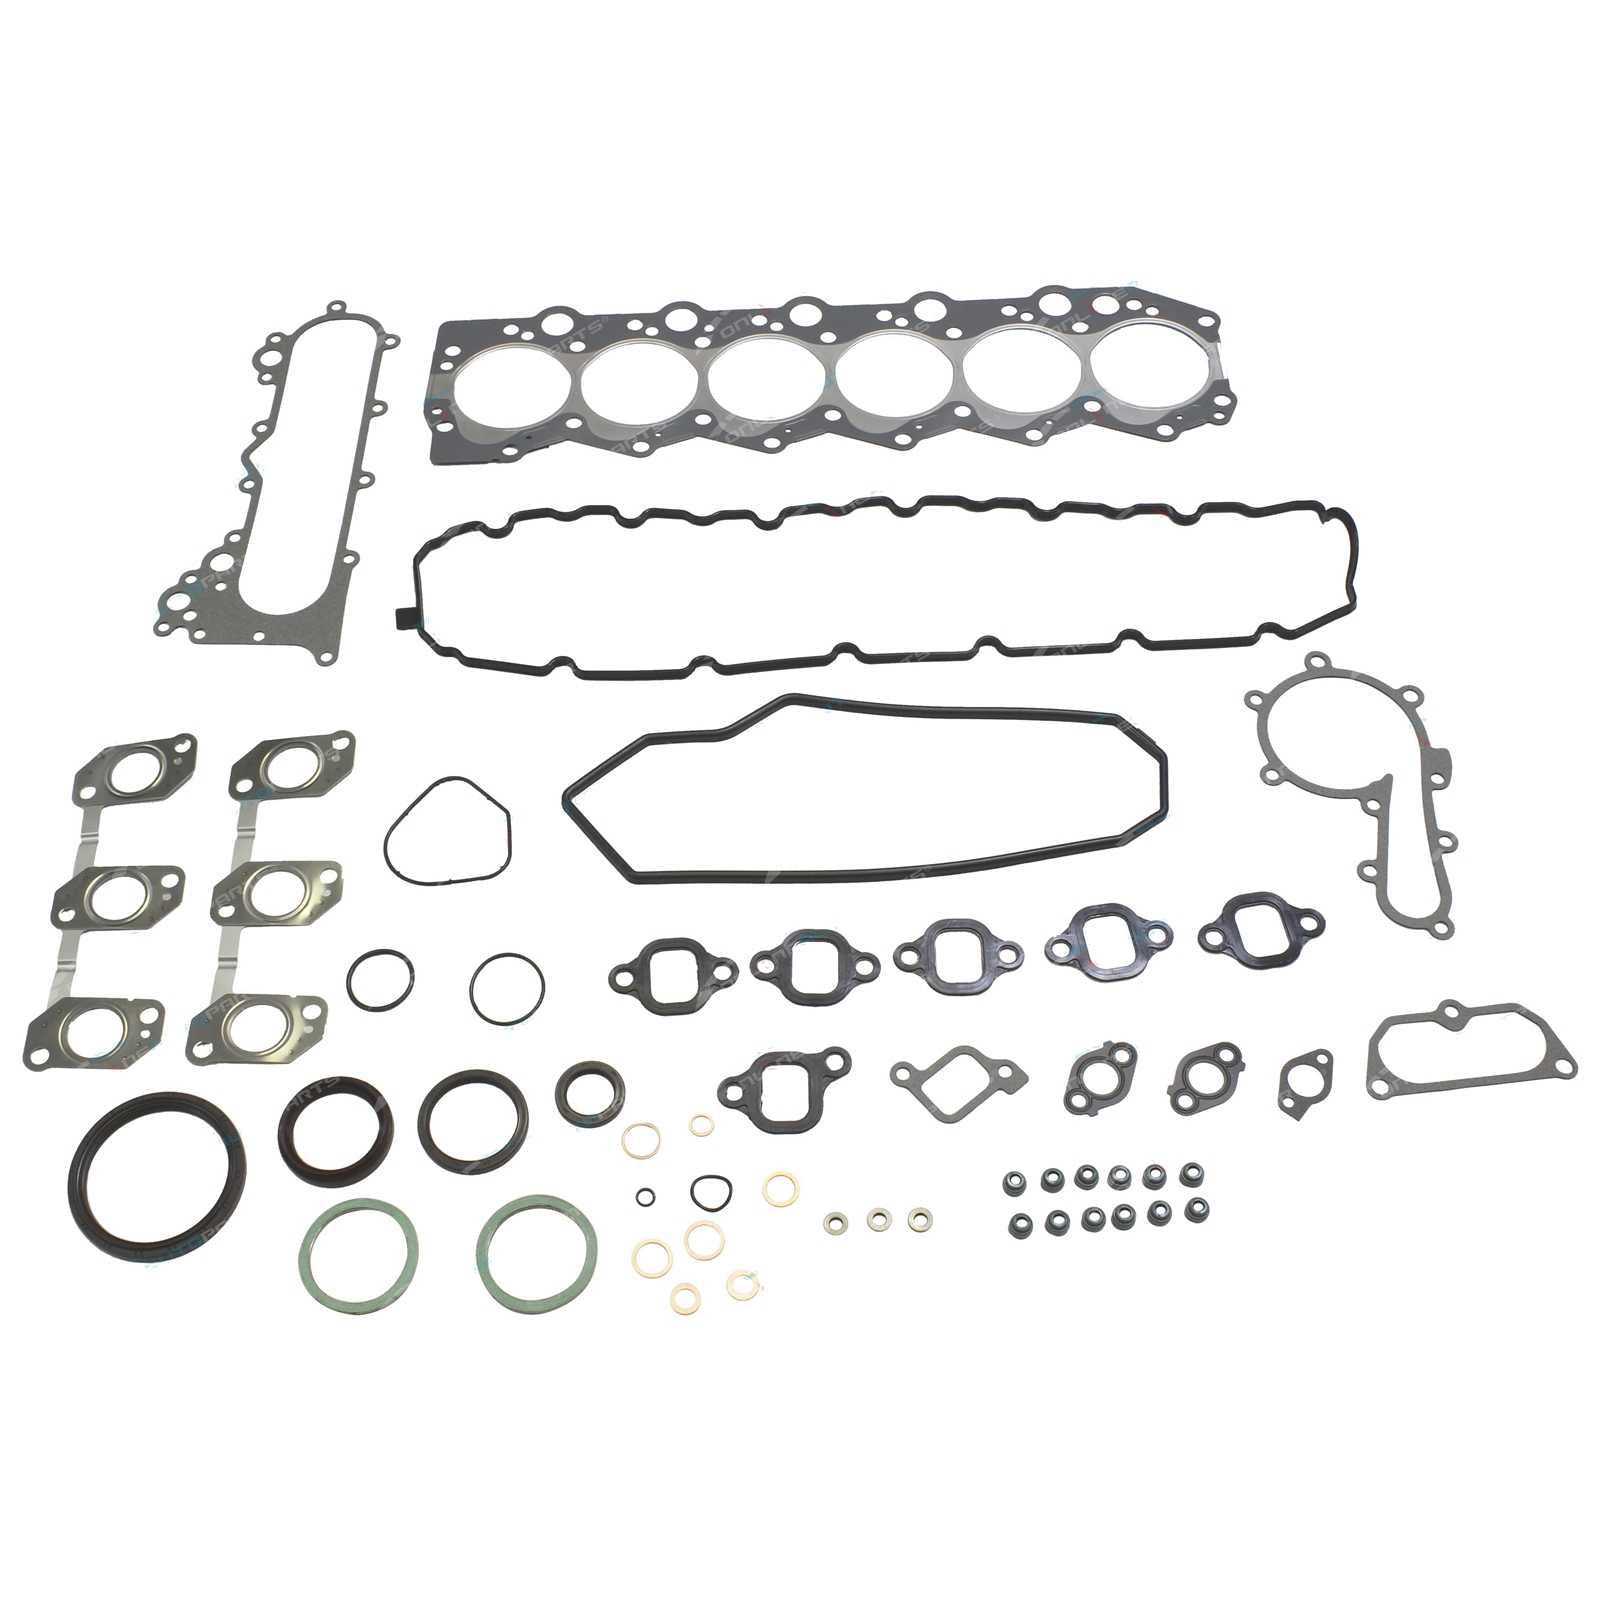 Full Engine Vrs Overhaul Set Inc Head Gasket For 1hz